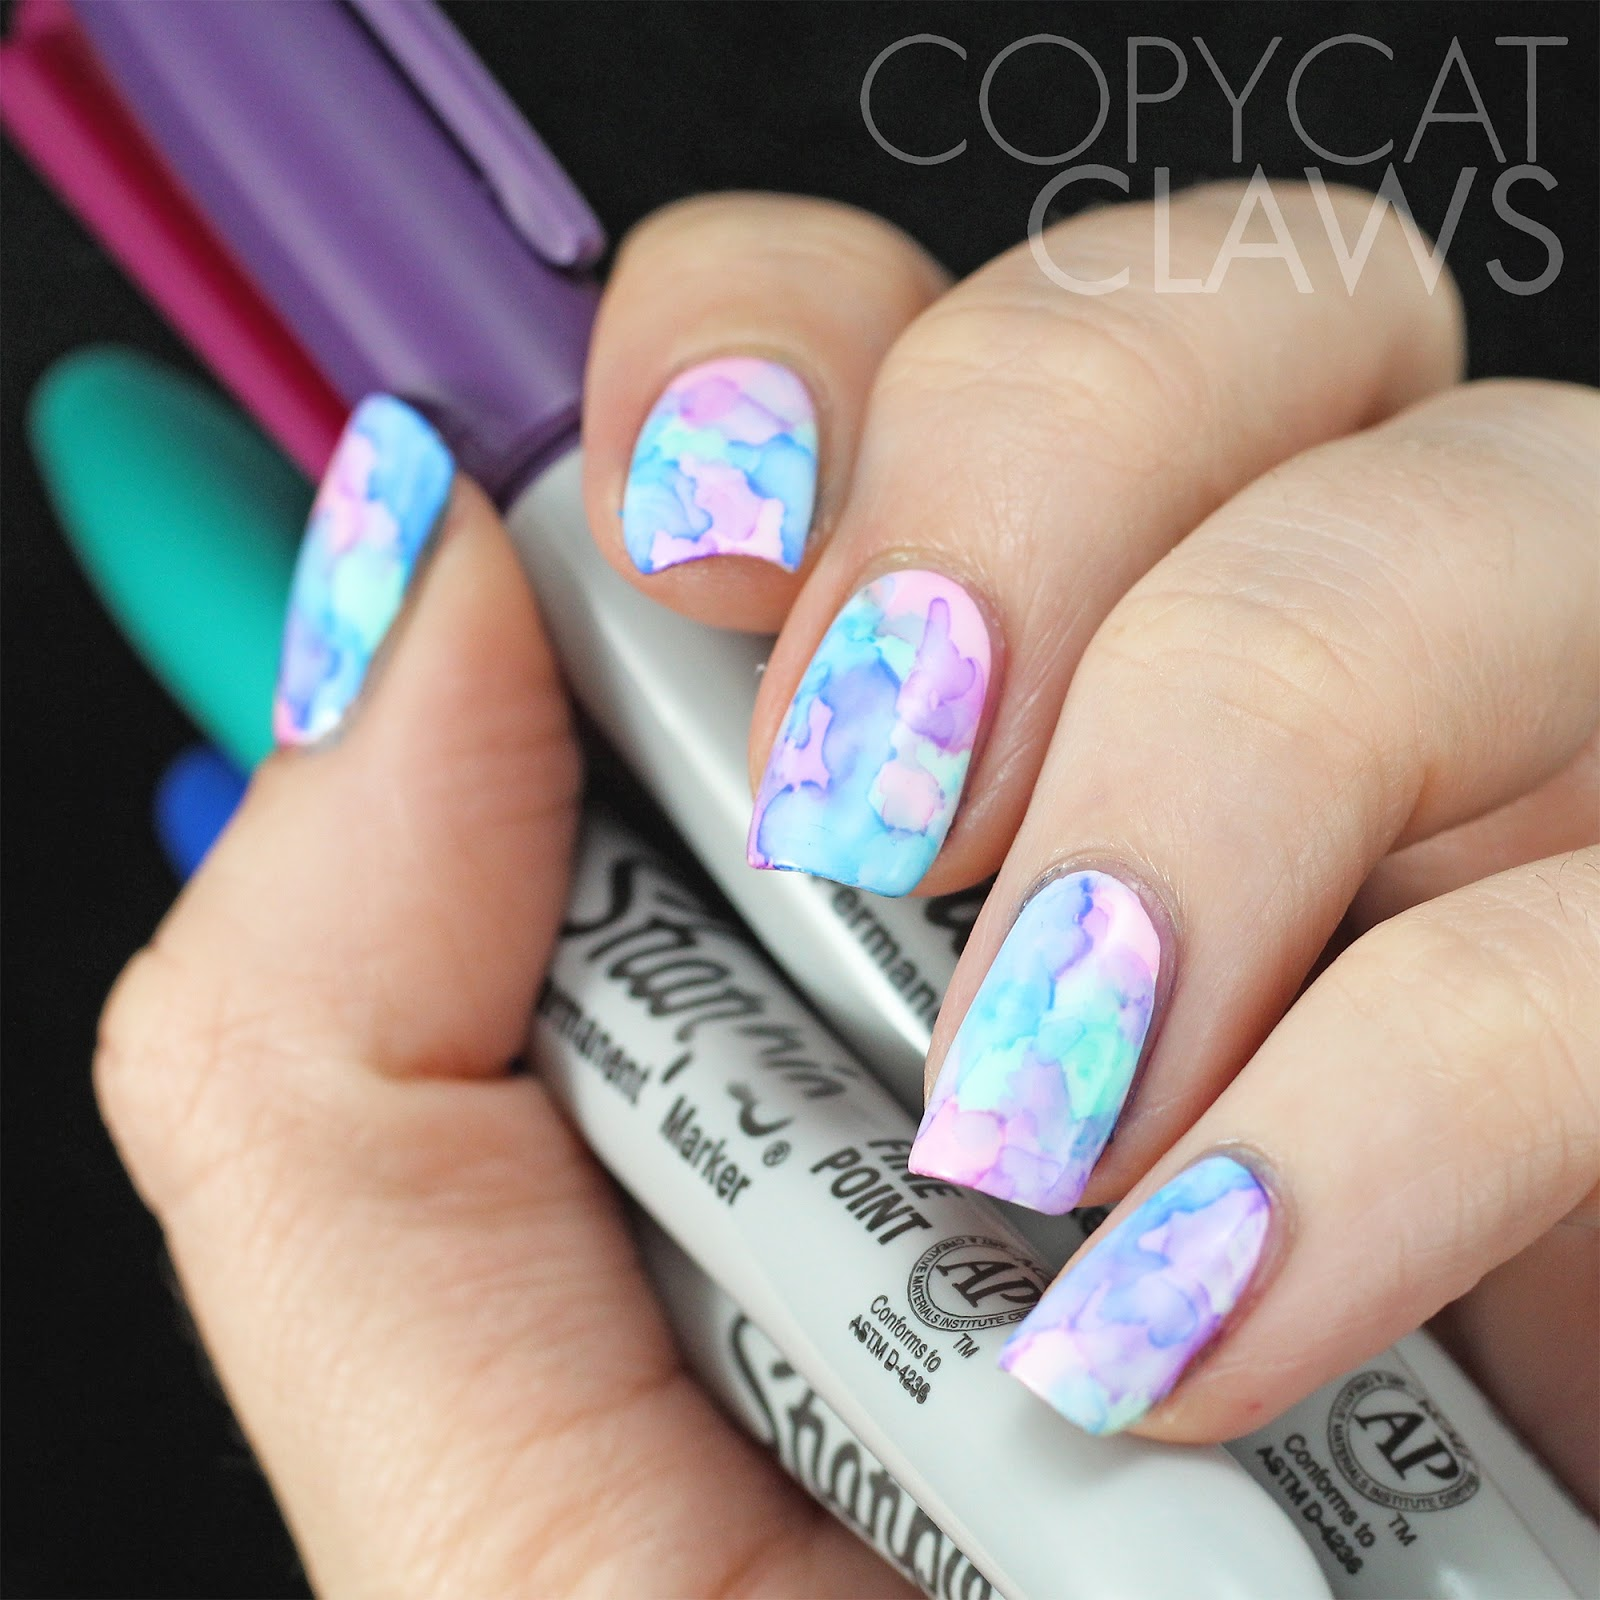 Copycat Claws: Sunday Stamping - Chevrons and Zig Zags